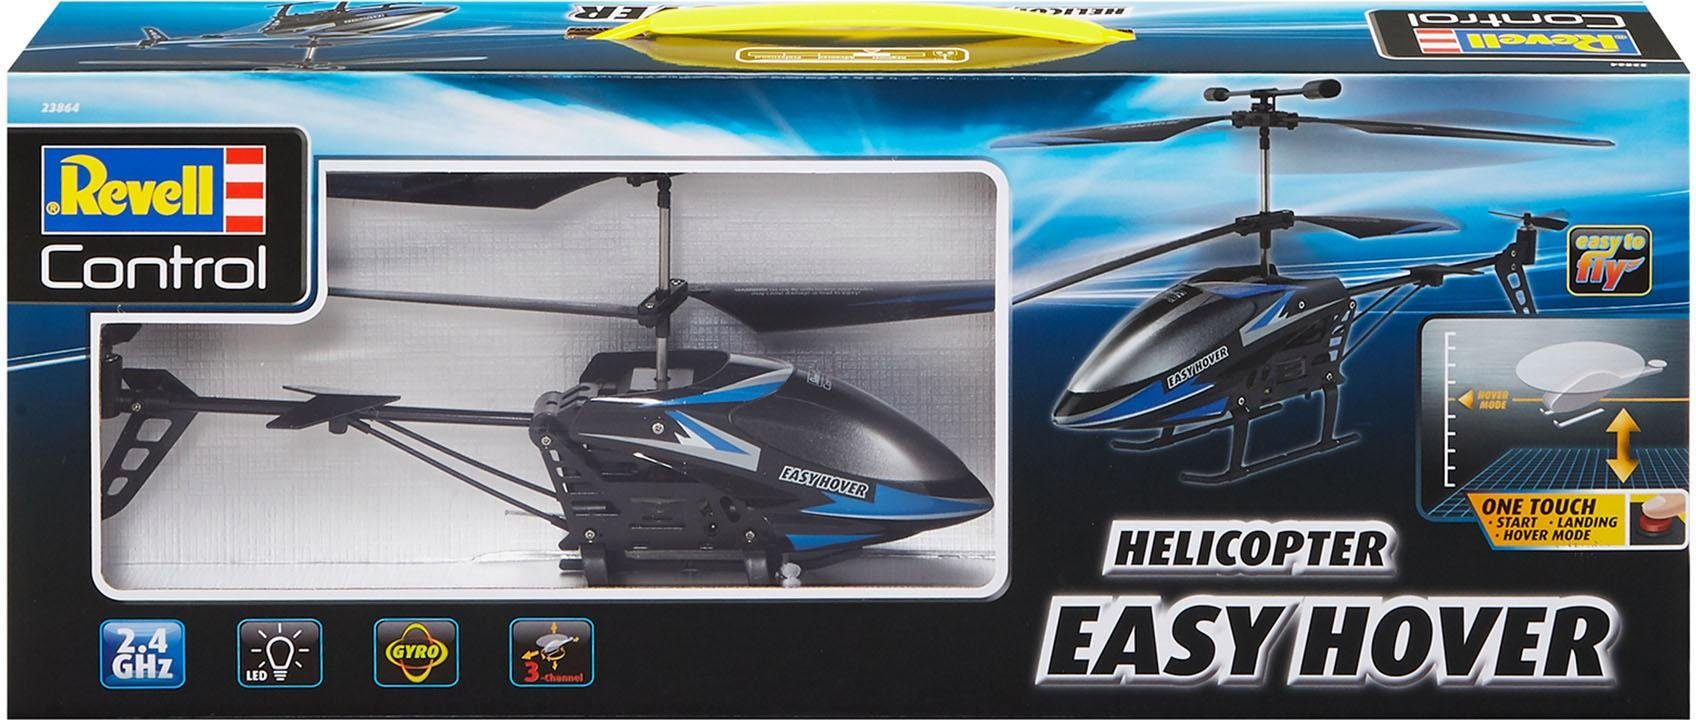 Revell RC Hubschrauber mit LED-Beleuchtung, »Revell® control, Easy Hover, 2,4 GHz«